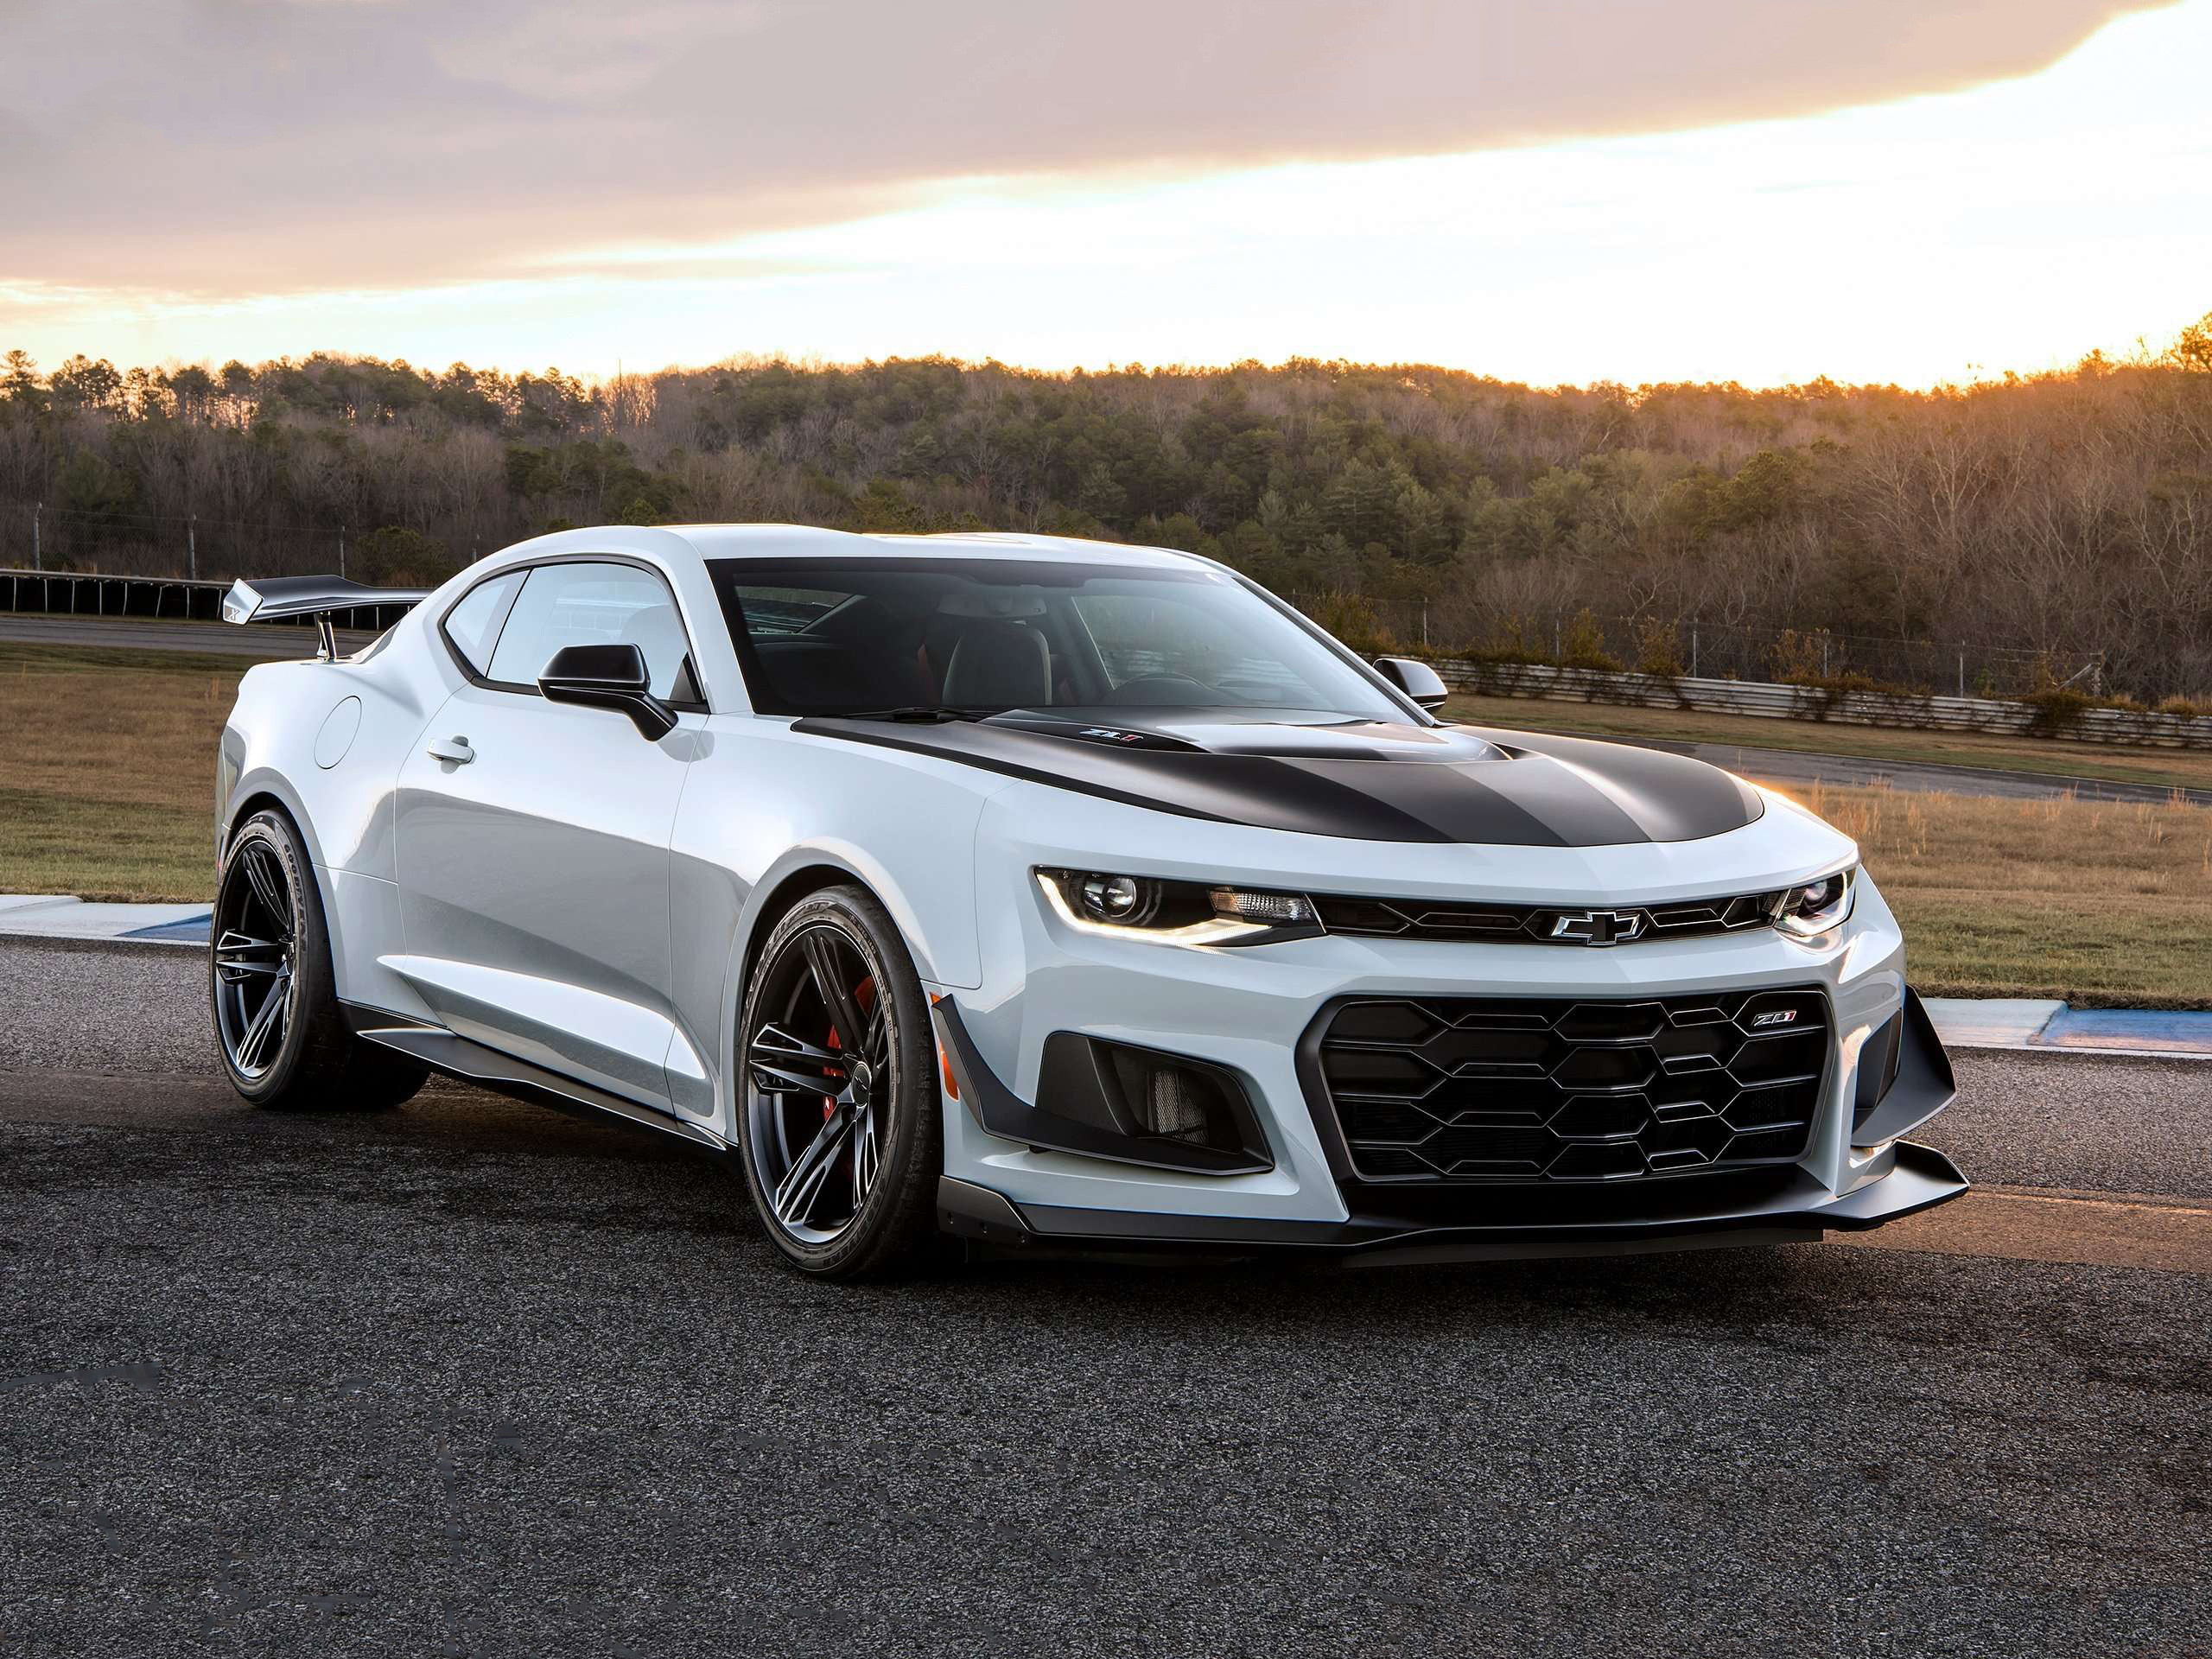 2560x1920 Chevrolet Camaro ZL1 1LE, 2018. Original Resolution: